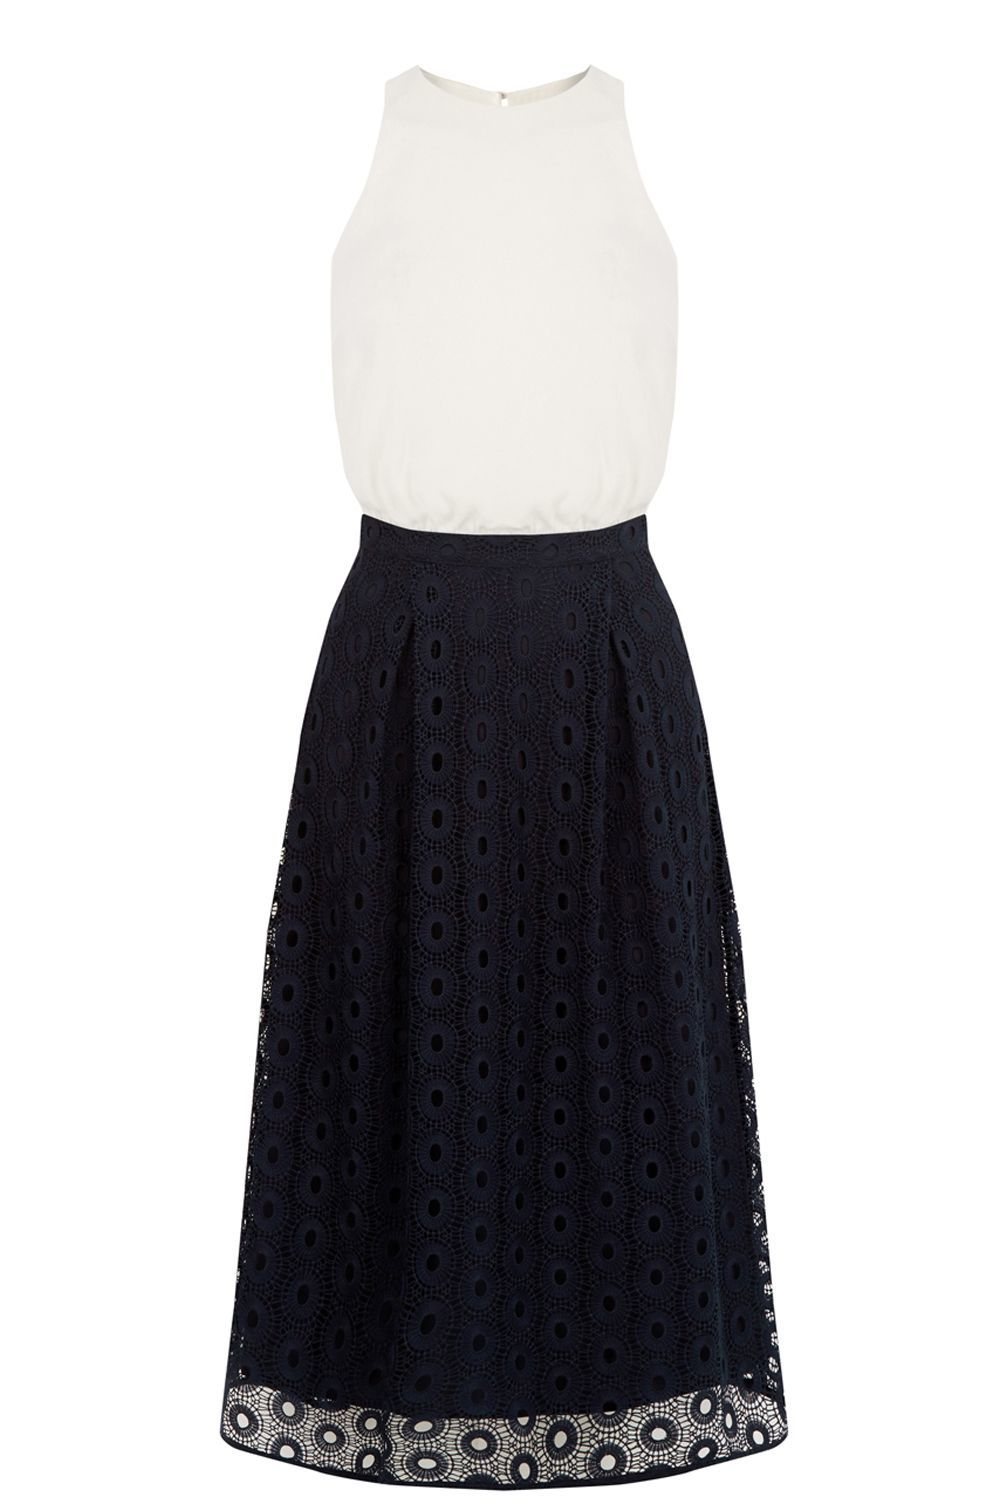 Lace And Woven Mix Prom Dress, Navy - sleeve style: sleeveless; style: prom dress; waist detail: fitted waist; secondary colour: white; predominant colour: navy; occasions: evening, occasion; length: on the knee; fit: fitted at waist & bust; fibres: cotton - 100%; neckline: crew; hip detail: structured pleats at hip; sleeve length: sleeveless; texture group: lace; pattern type: fabric; pattern size: standard; pattern: patterned/print; season: a/w 2016; wardrobe: event